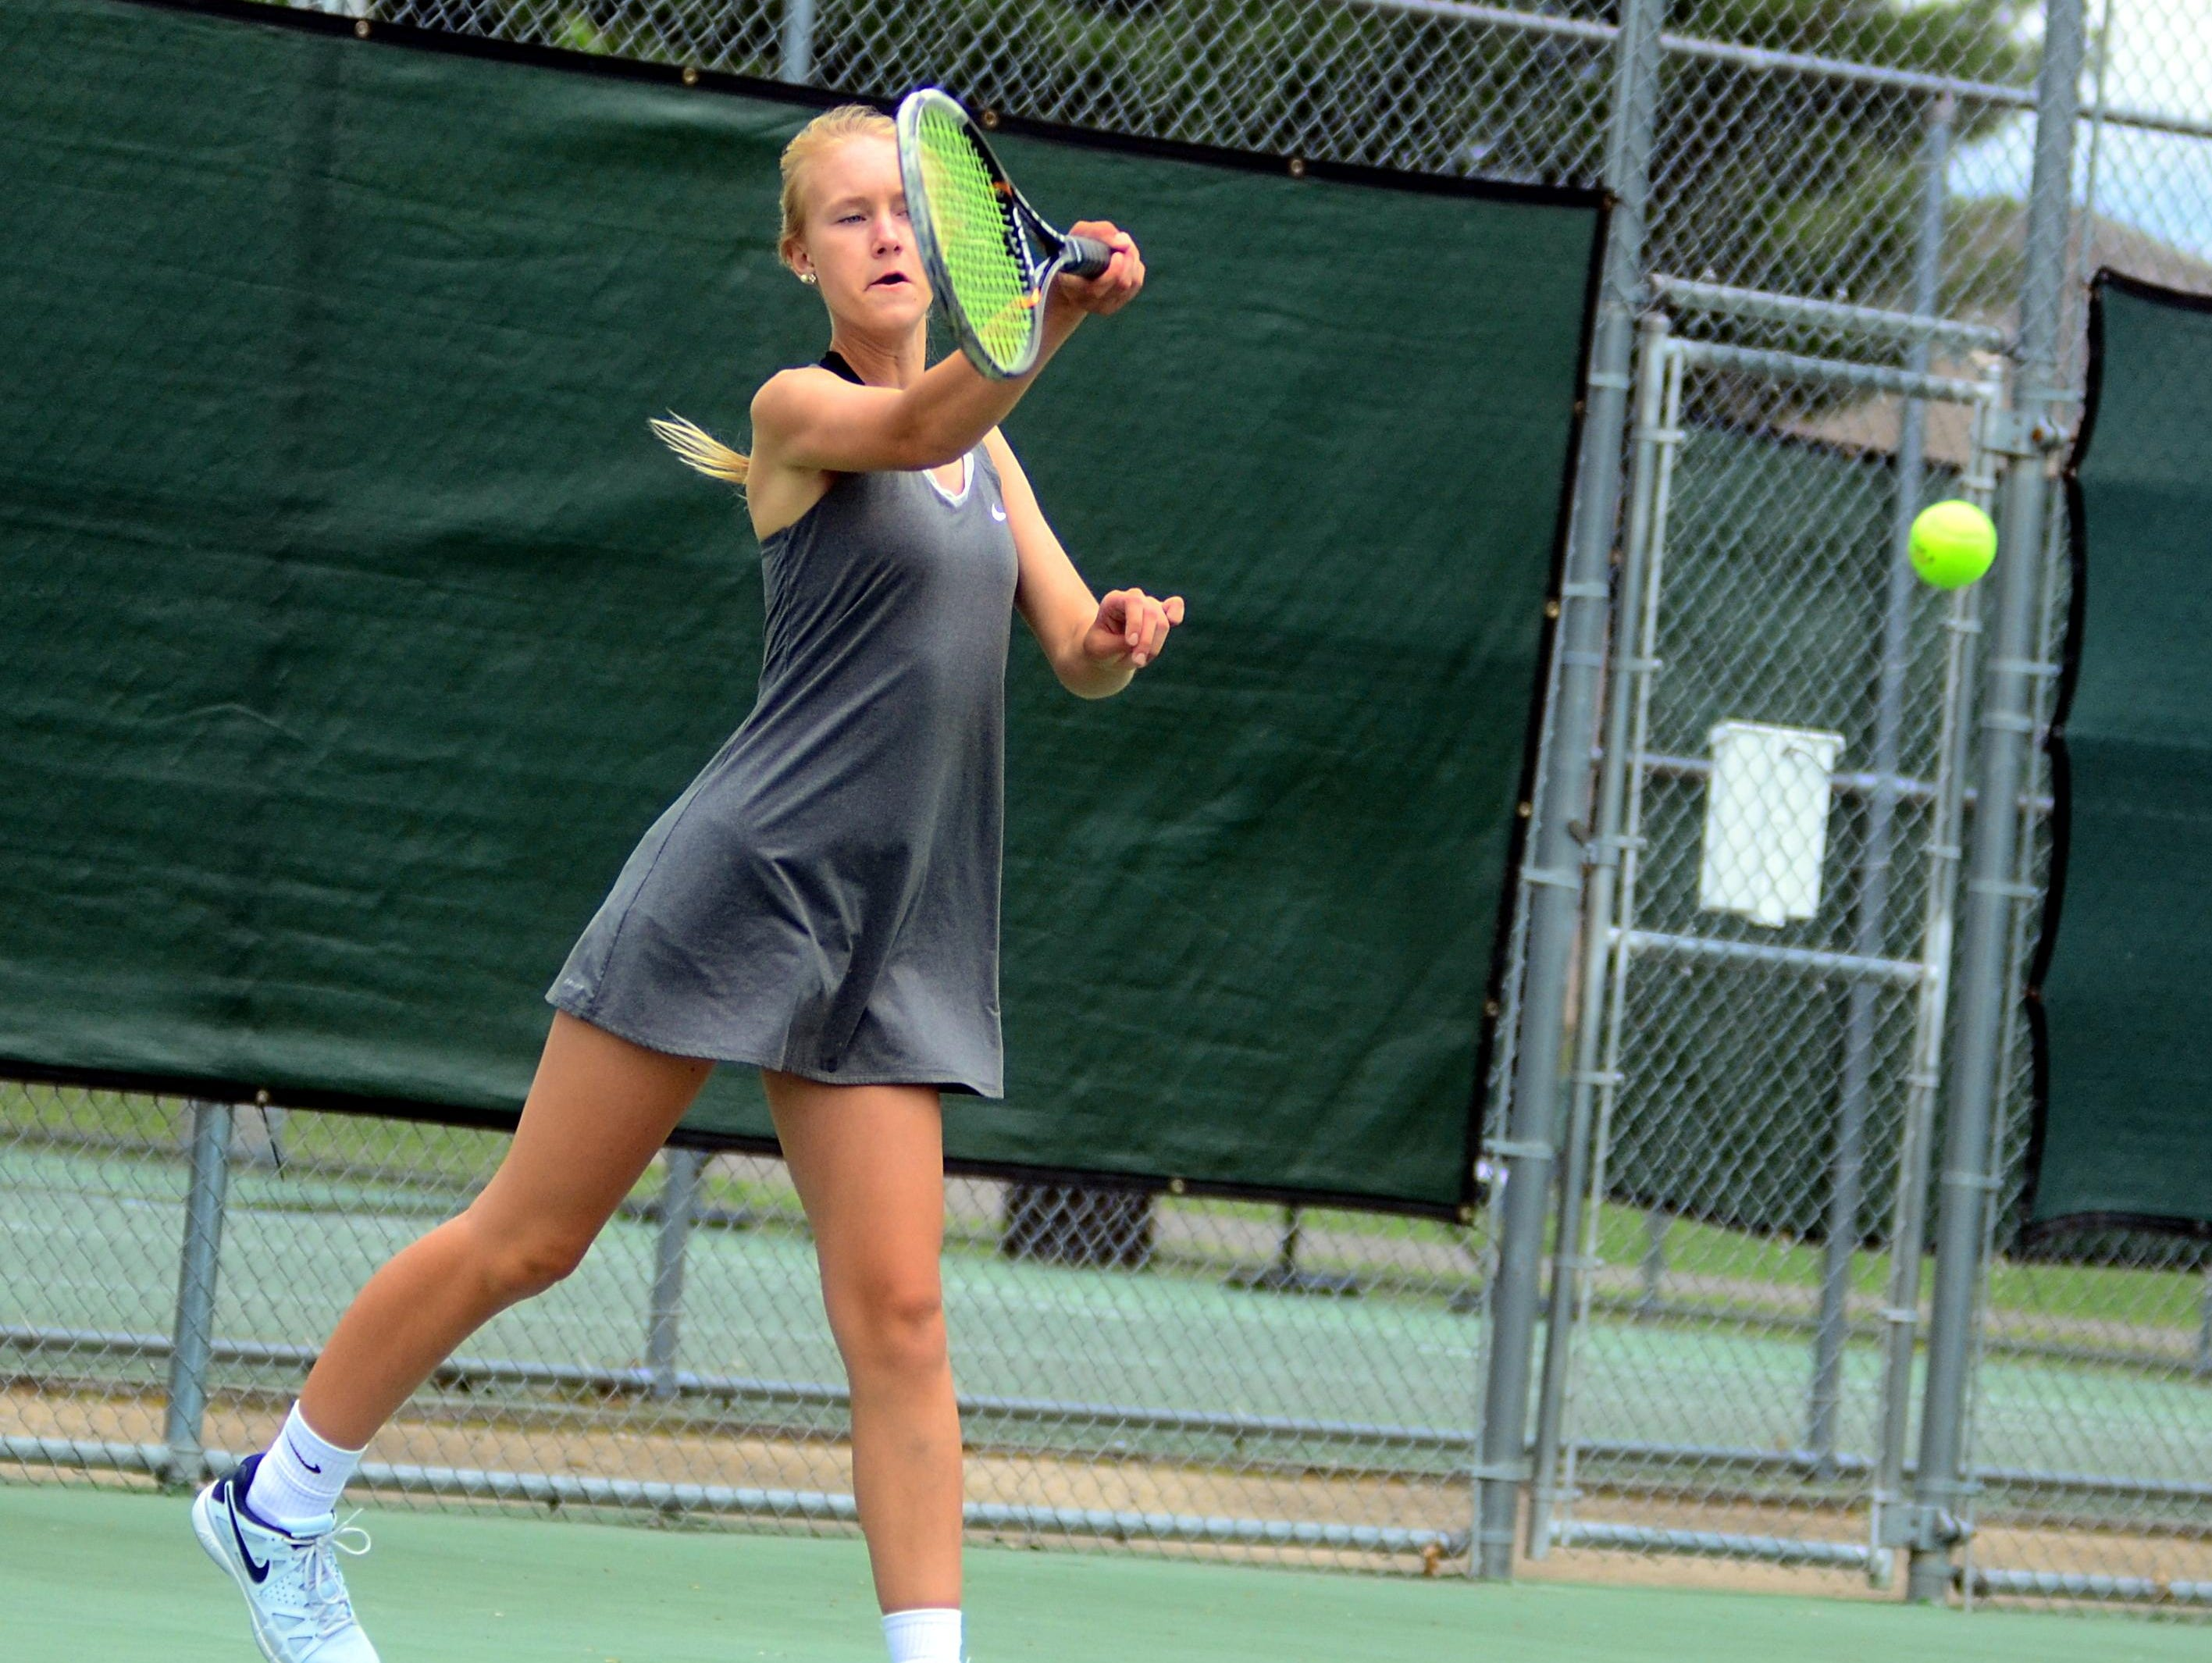 Hendersonville High sophomore Kayla Conger hits a forehand during Tuesday's District 9-AAA Individual Tennis Tournament. Conger advanced to the semifinals before suffering a straight-set loss to Mt. Juliet's Kayla Conger.